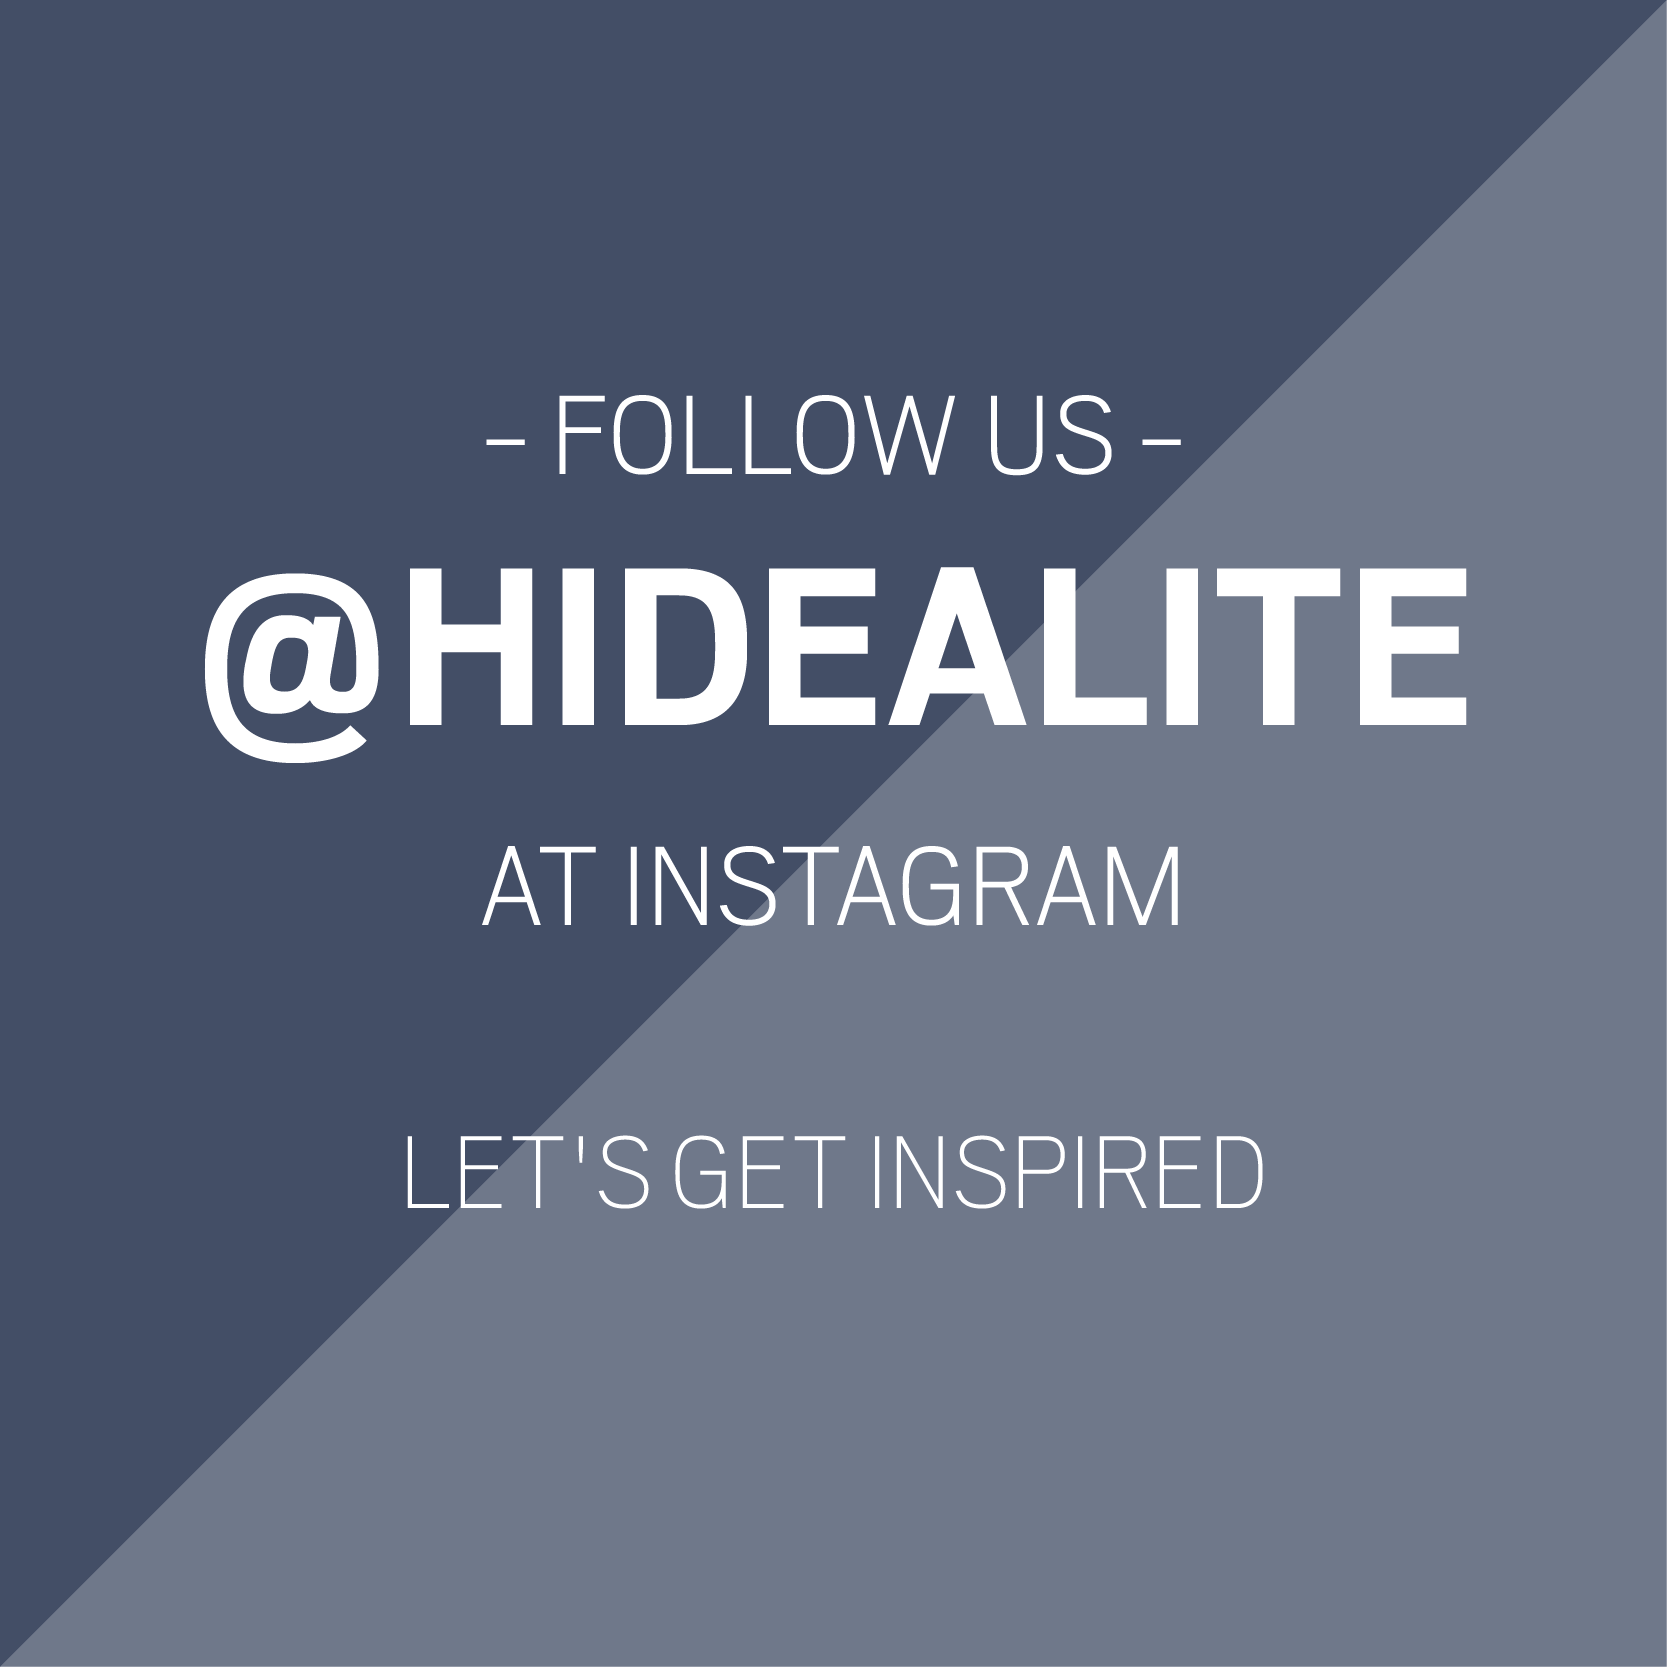 Blue background with text about following hidealite's instagram for inspiration